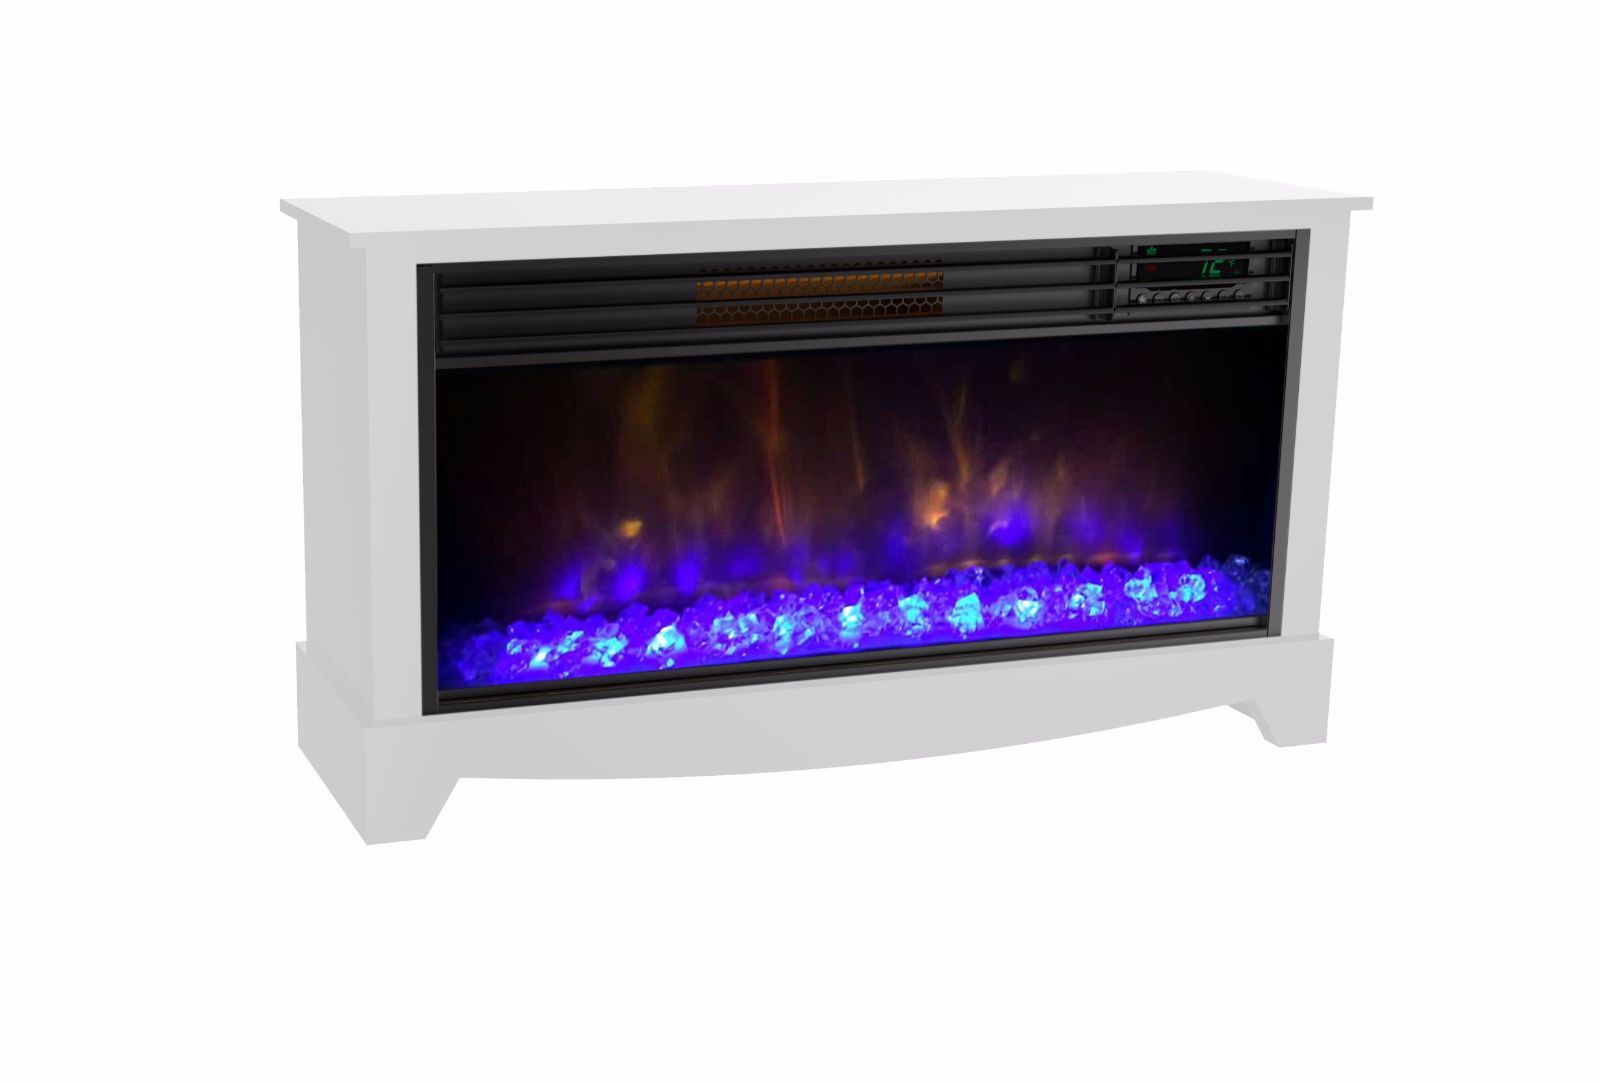 Lifesmart Lifezone Electric Infrared Media Fireplace Room Heater ...